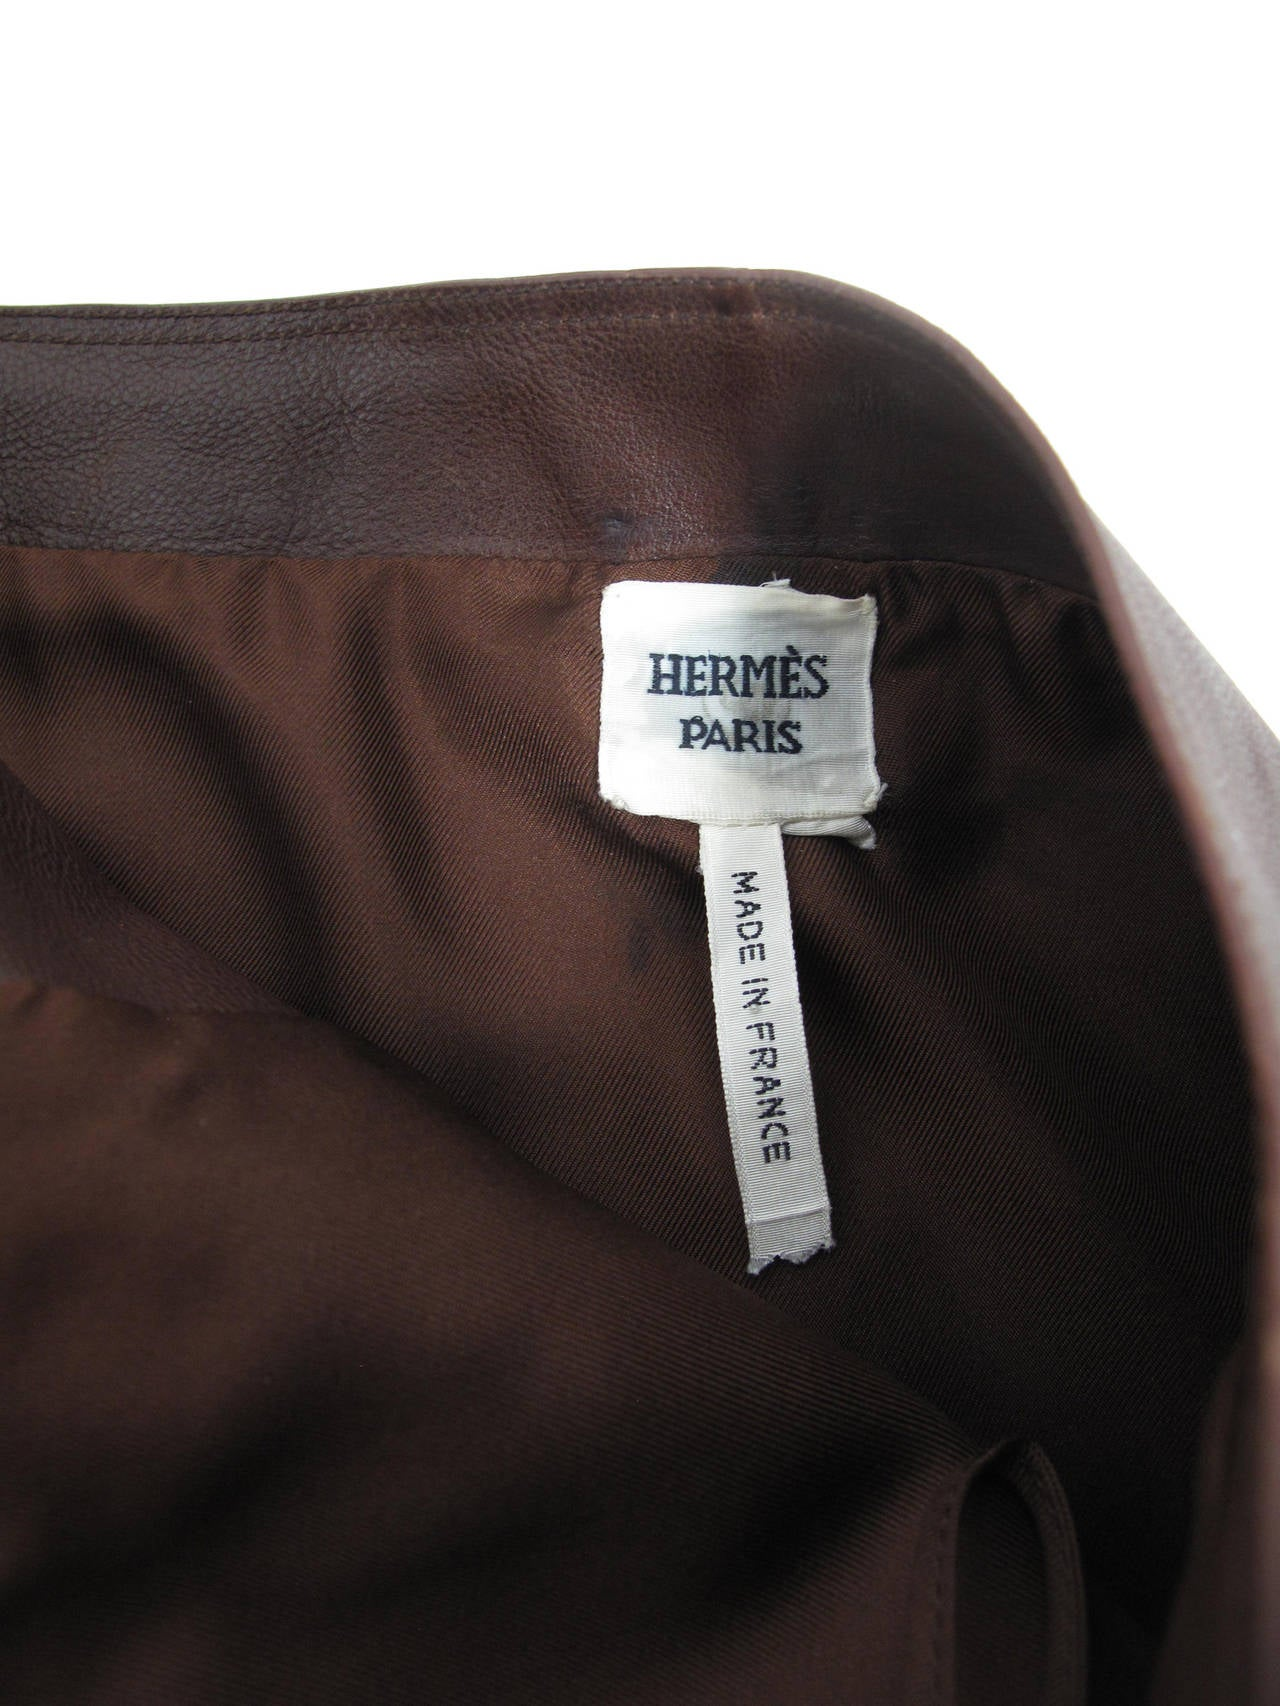 Hermes Rich Dark Brown Leather Wrap Skirt with Buckle 7